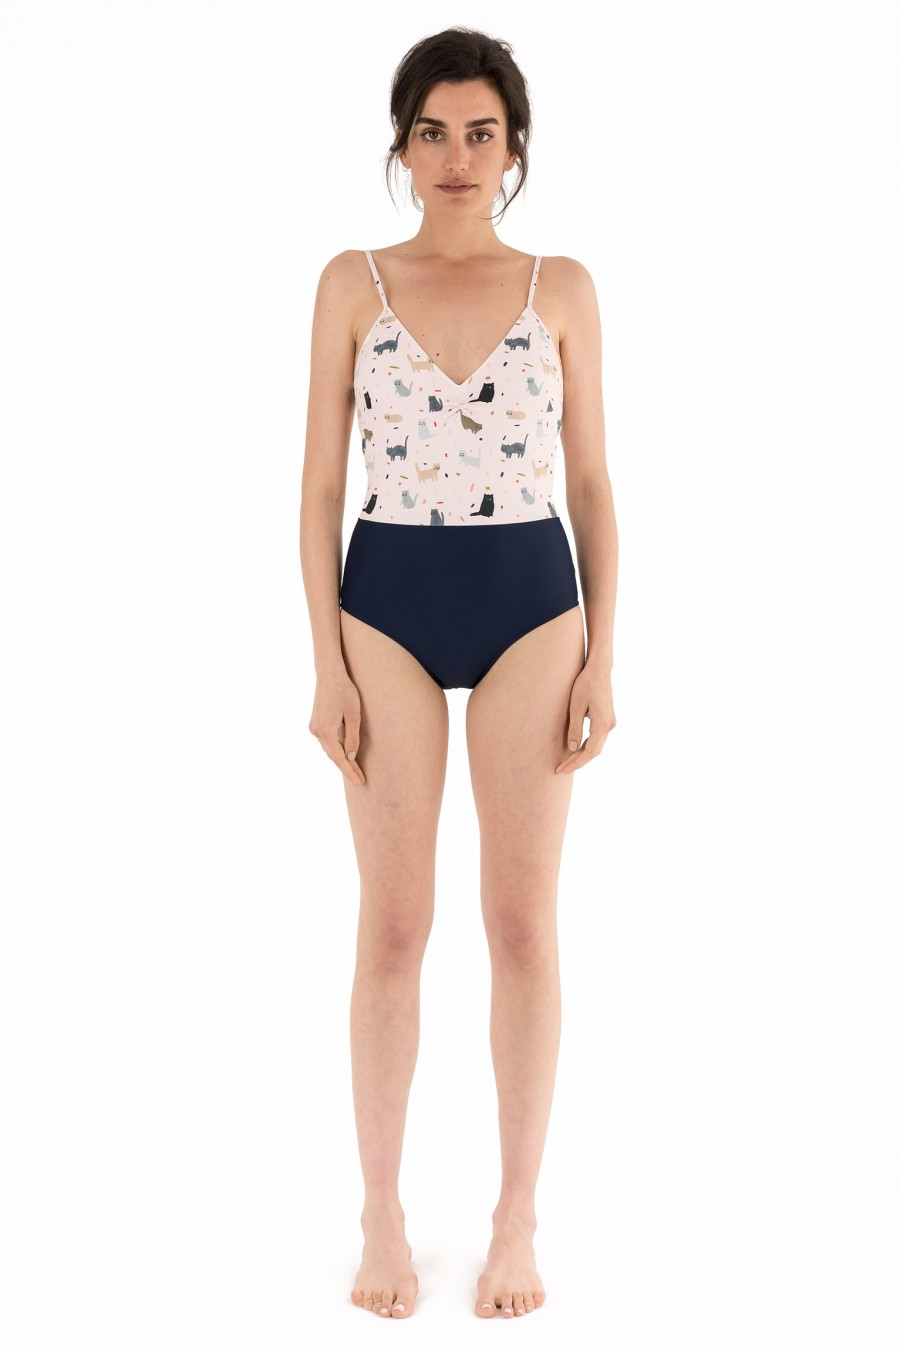 One-piece two-tone swimsuit with kittens